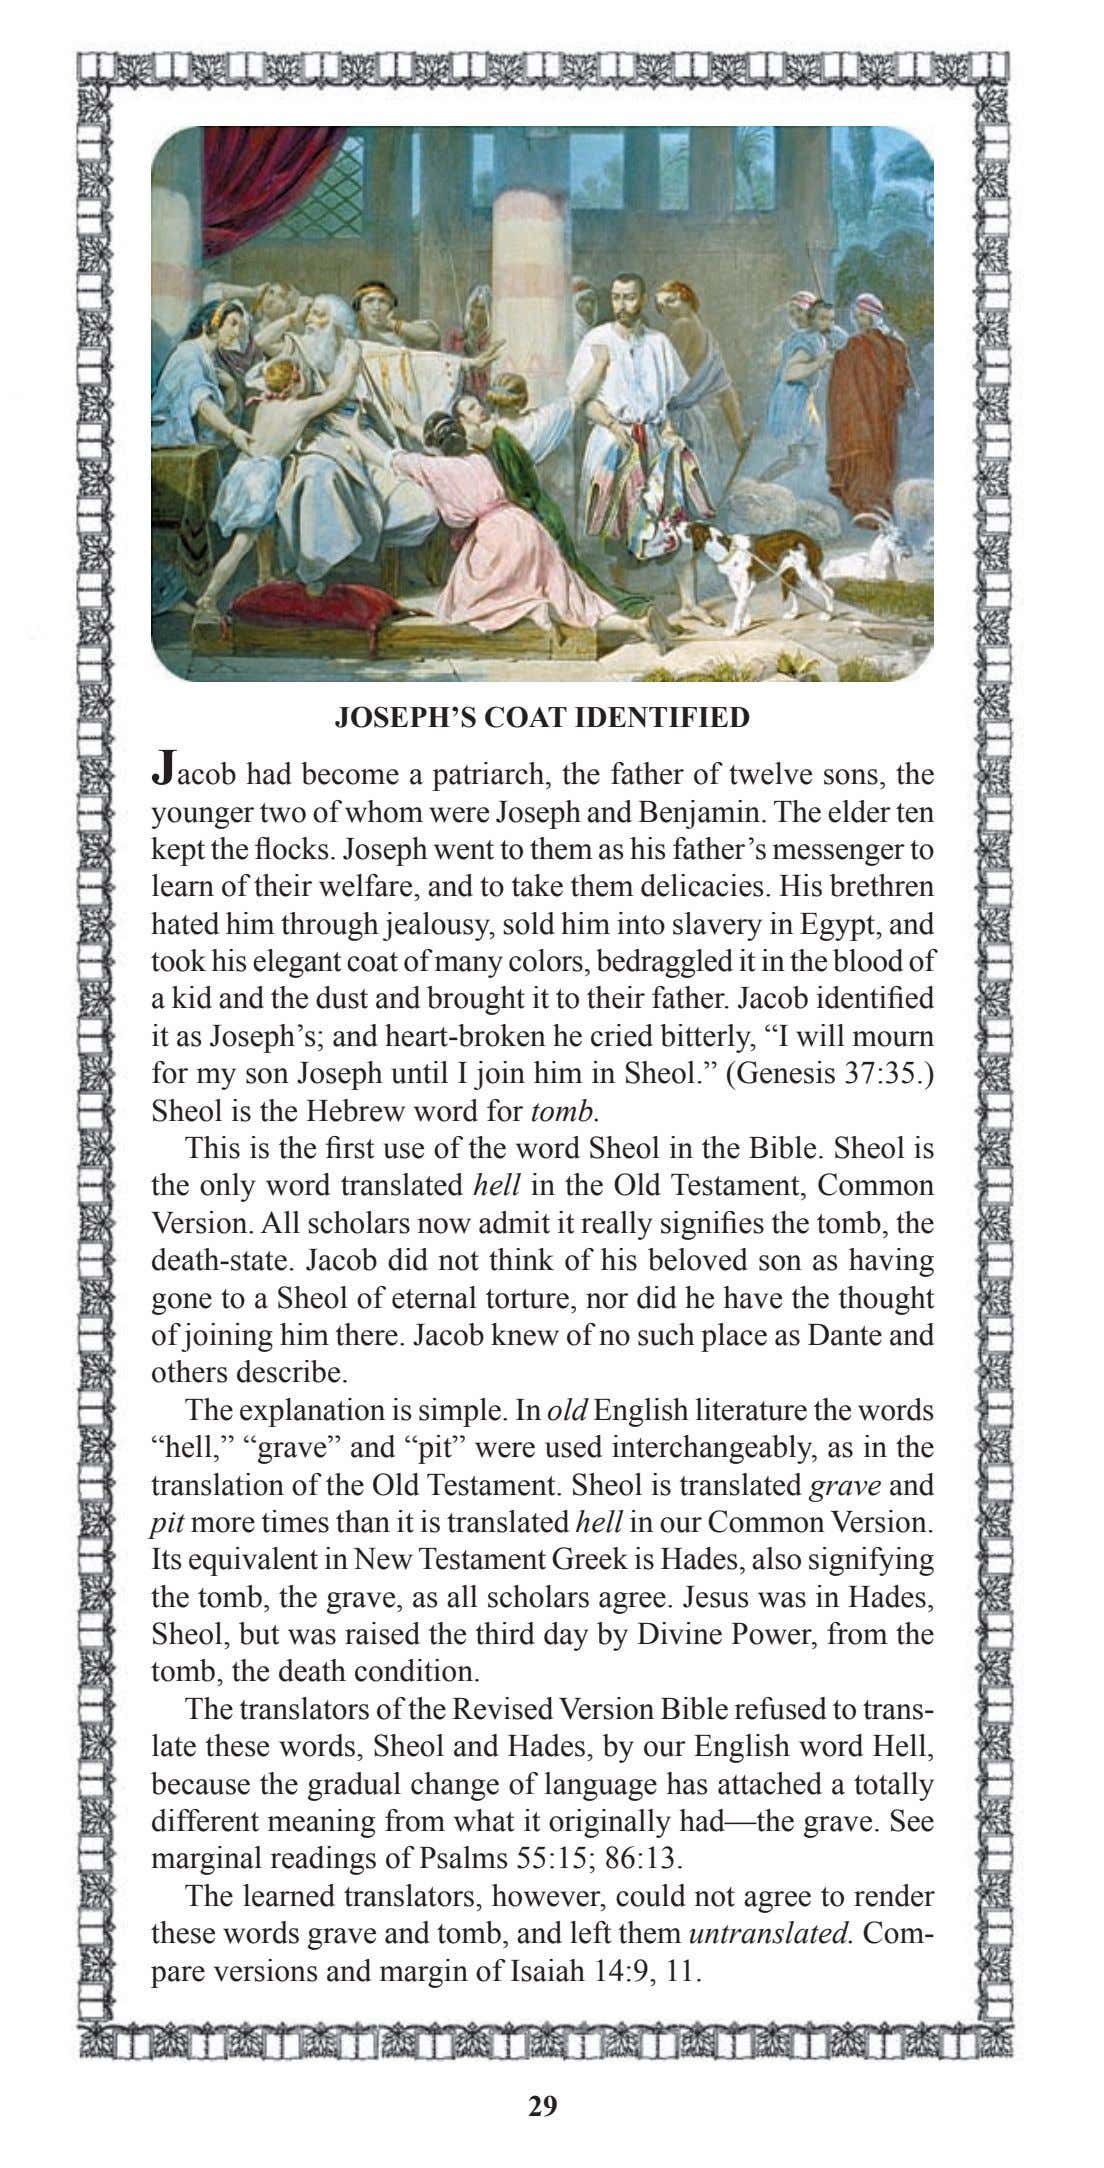 JOSEPH'S COAT IDENTIFIED Jacob had become a patriarch, the father of twelve sons, the younger